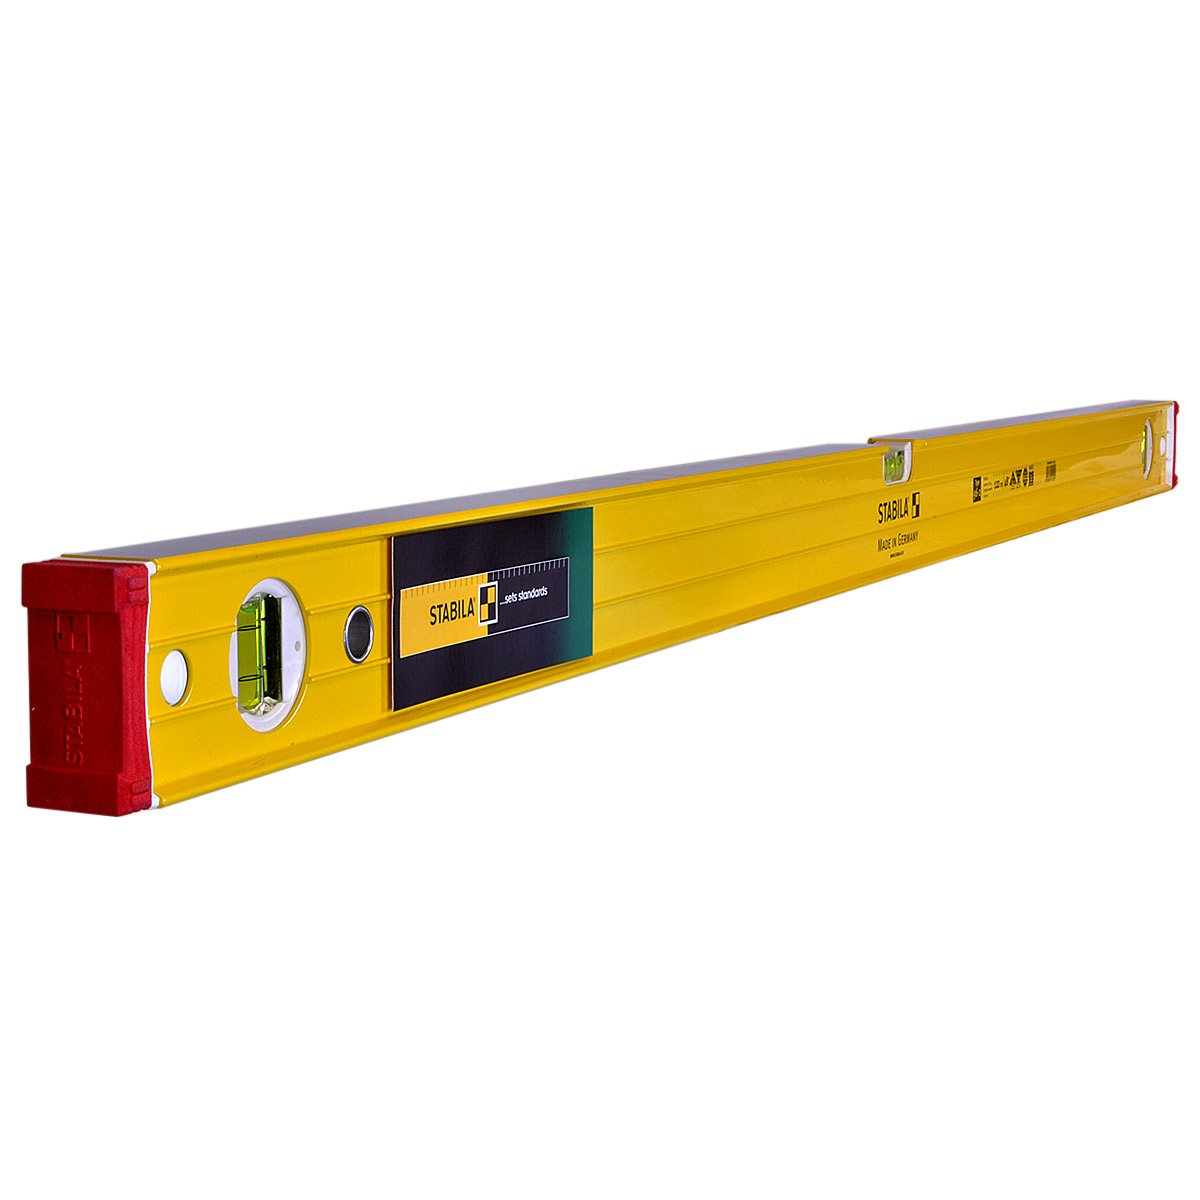 Stabila 96-2-40 Level 3 Vial 40cm / 16in 15225 STB96-2-40 Girder Levels Hand Tools Stabila Girder Levels